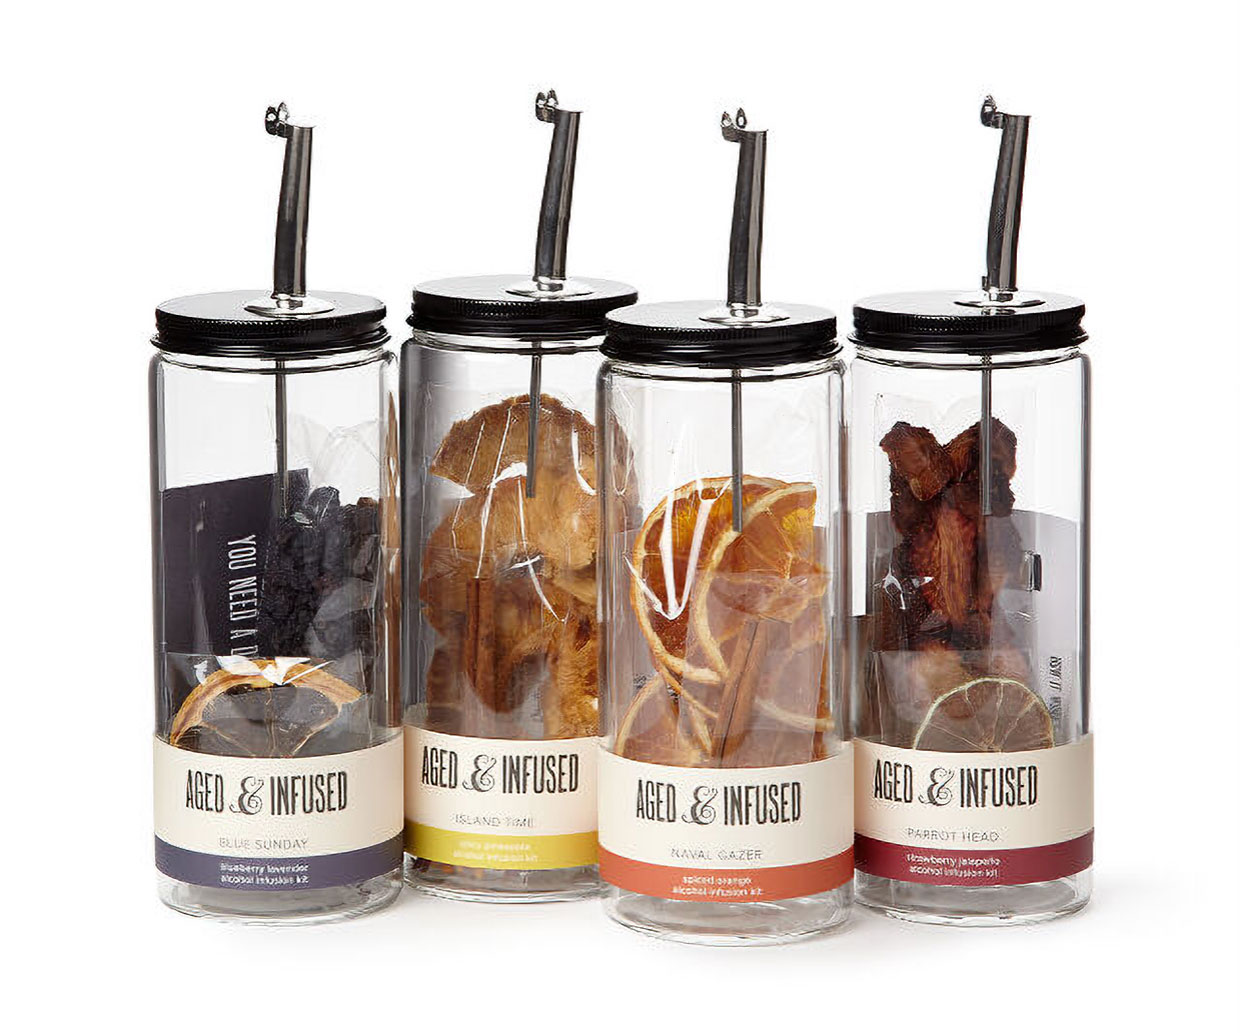 Aged & Infused Drink Infusion Kits